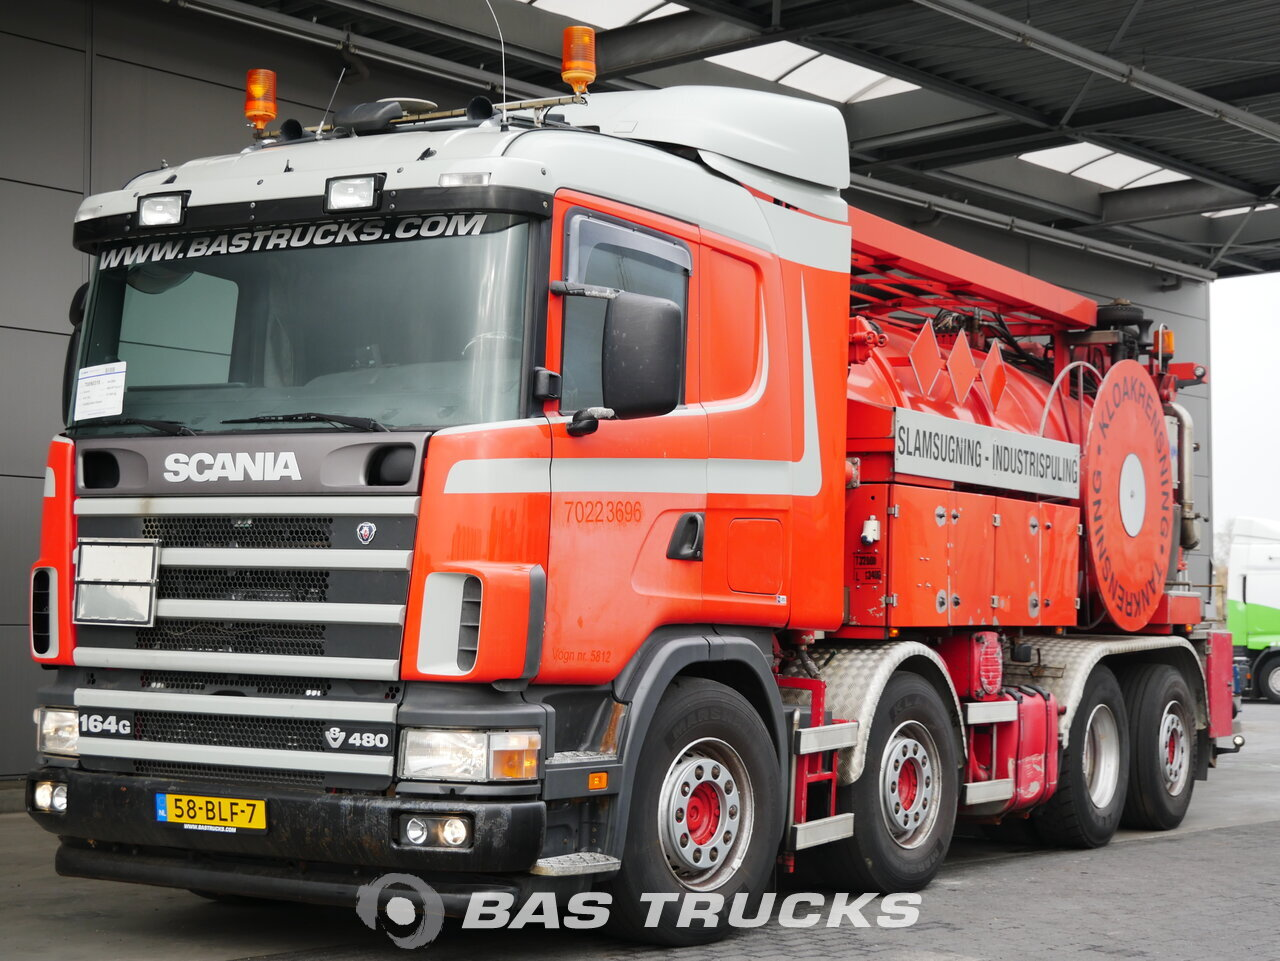 For sale at BAS Trucks: Scania 164G 480 8X2 06/2004